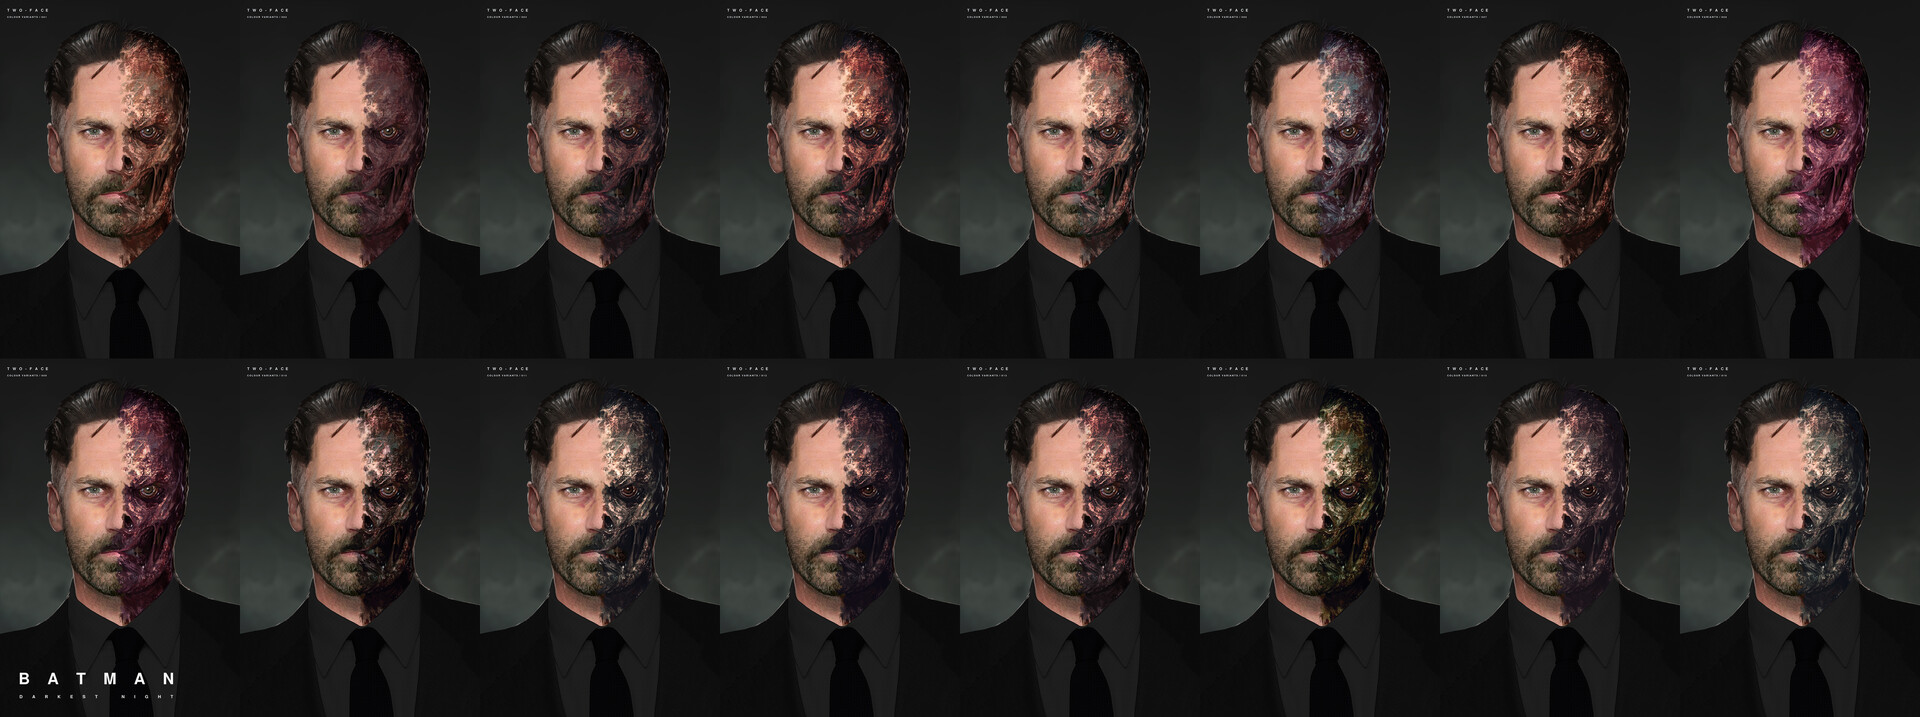 David paget two face colour tests